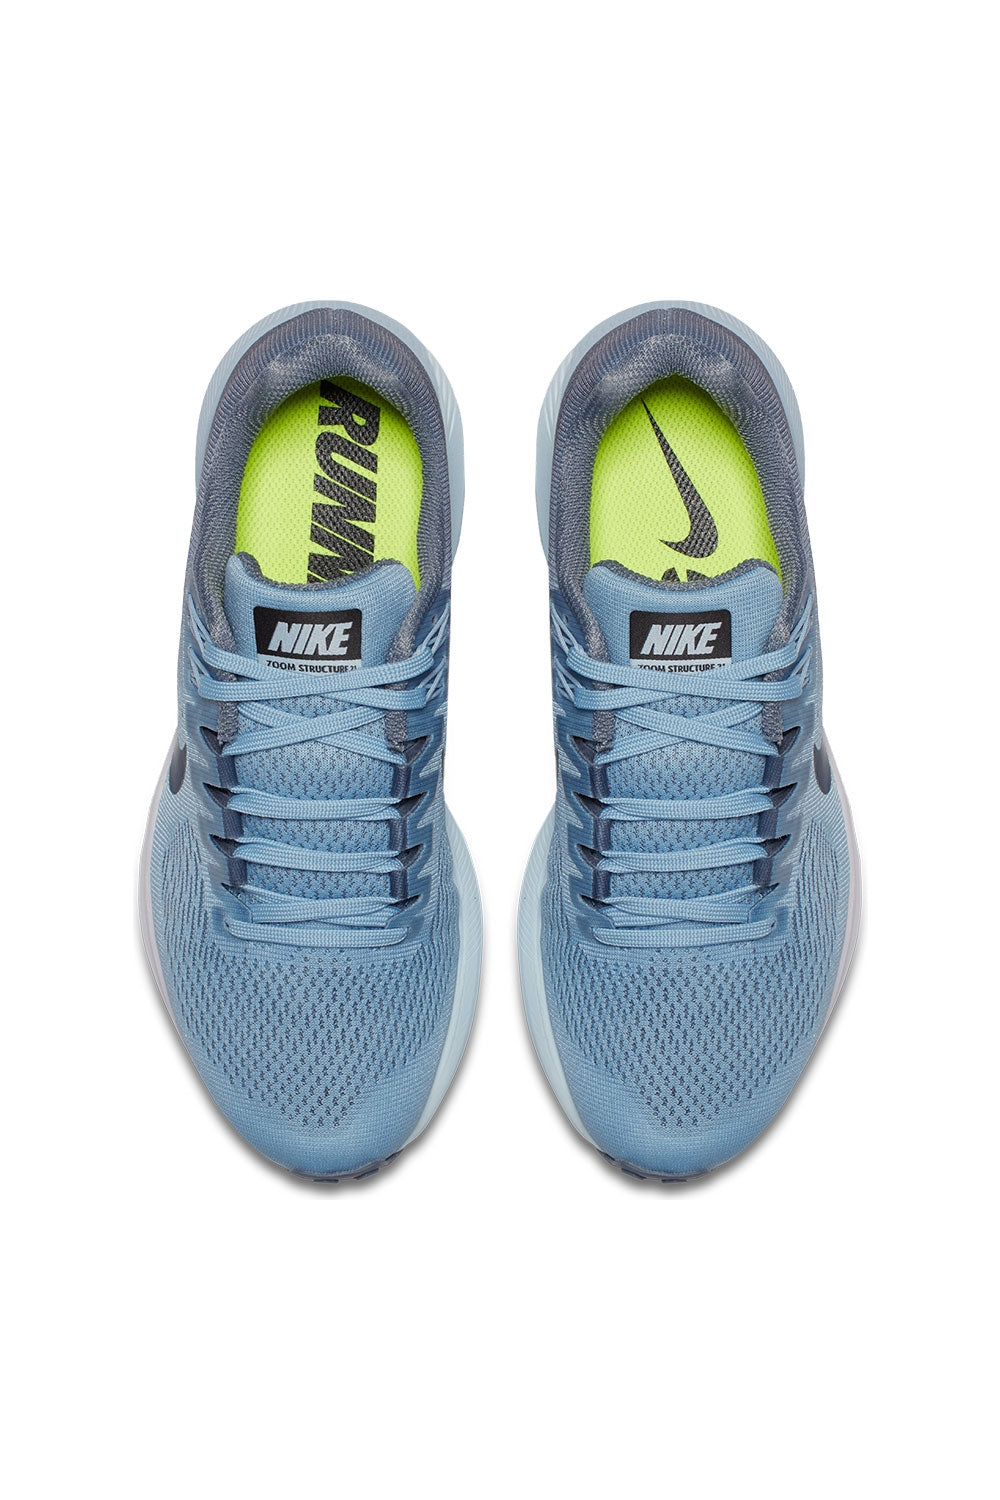 67cbf570a532d Nike Women s Air Zoom Structure 21 Running Shoe - Armory Blue Armory Navy Cirrus  ...